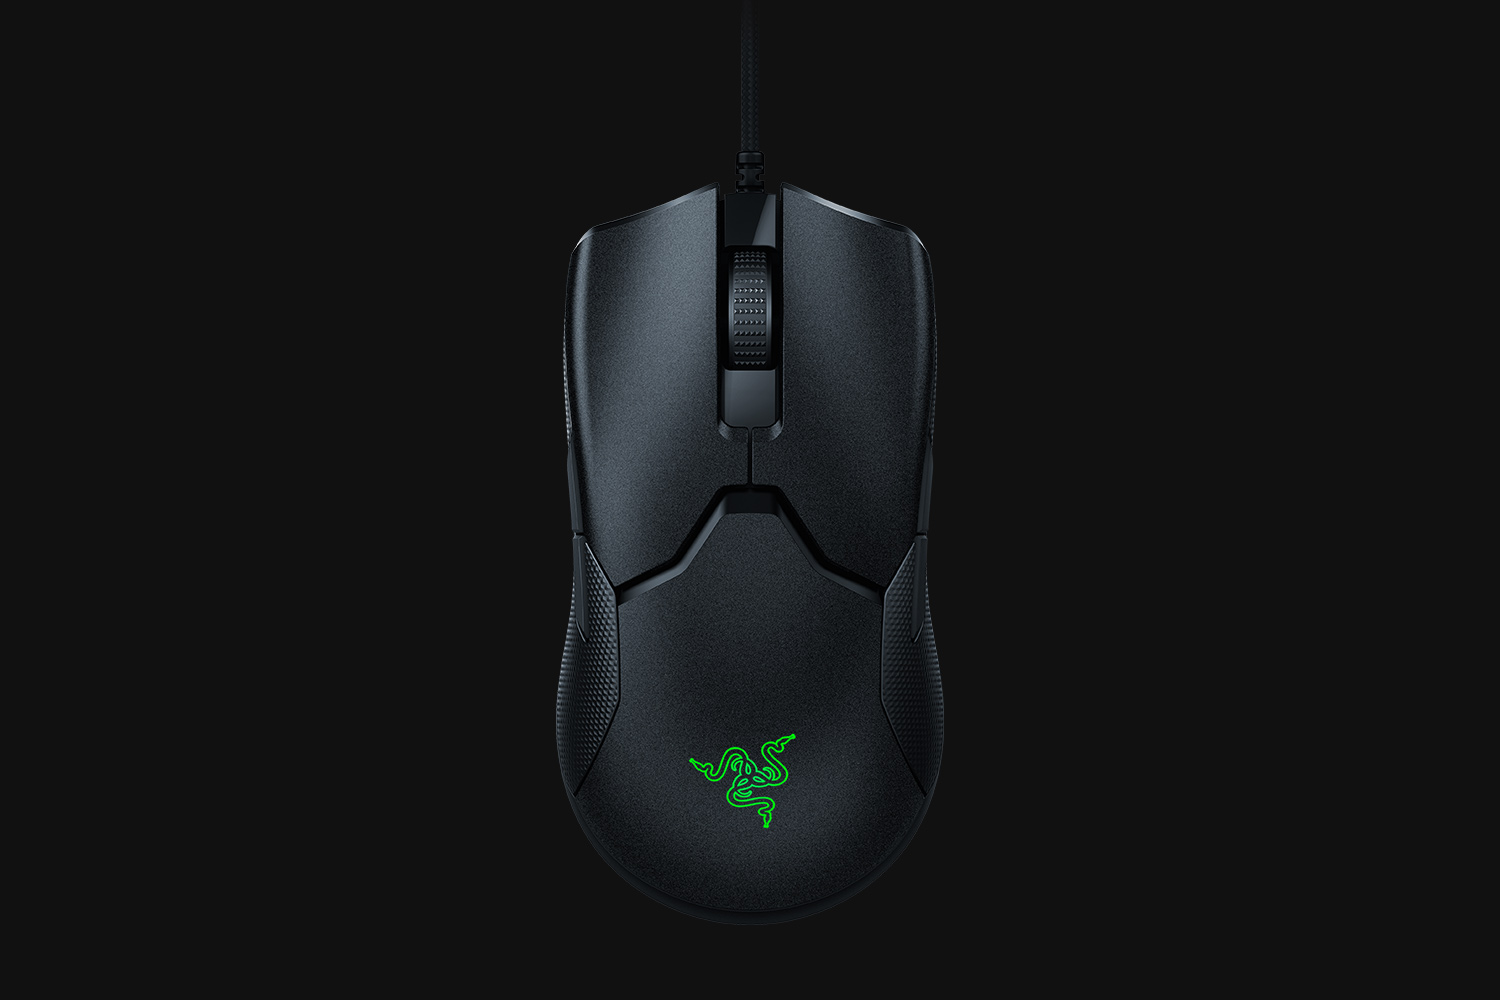 Razer Viper Optical Gaming Mouse